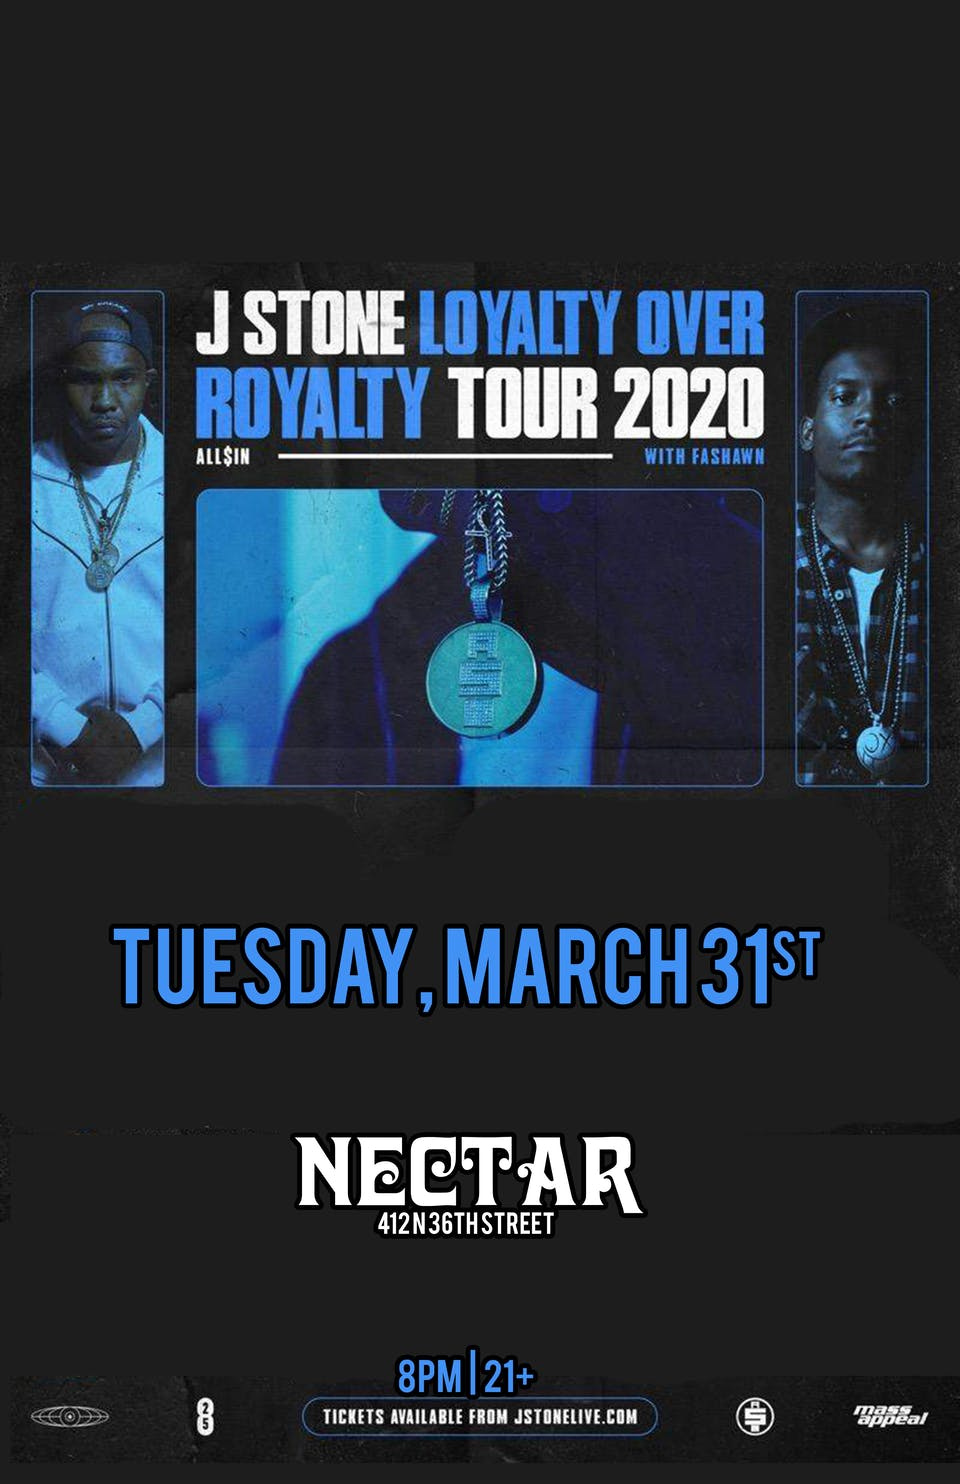 Postponed: FASHAWN + J STONE with special guests